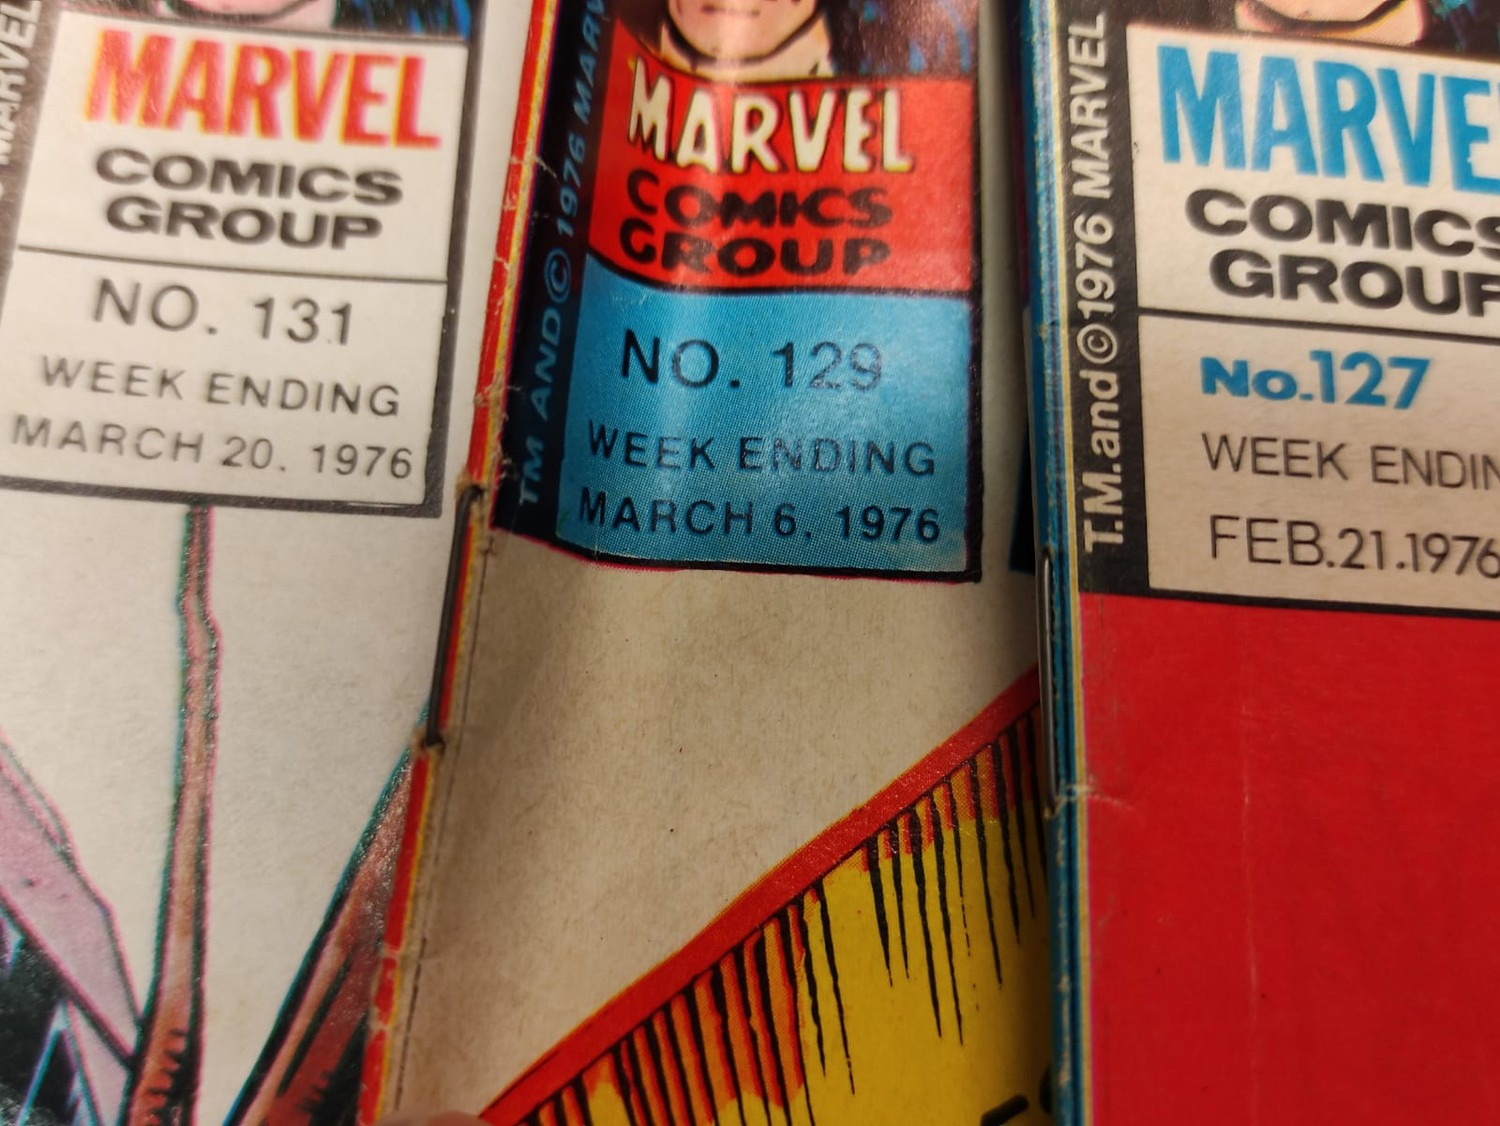 25 x Marvel comics. The Avengers. Dating from 1974-1976 - Image 9 of 18